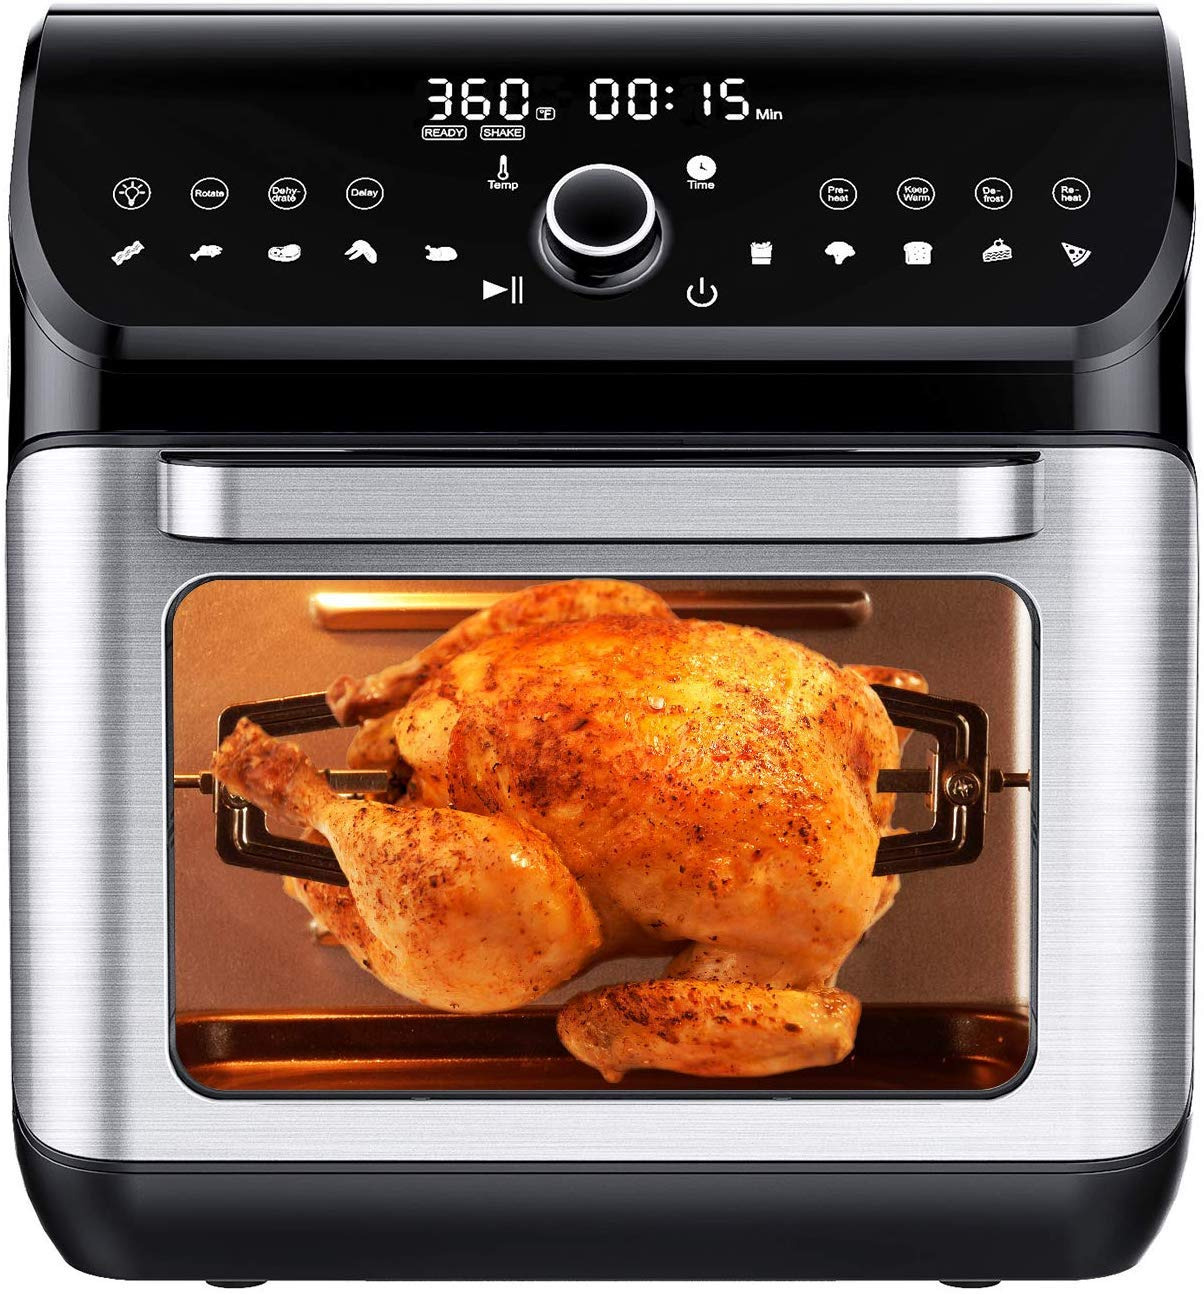 IKICH Fryer Oven, 12QT 10 Presets Hot Air LCD Touchscreen Toaster Dehydrator Rotisserie Defrost with Dishwasher Safe Skewers Racks Drip Tray Cookbook 1500W, Silver